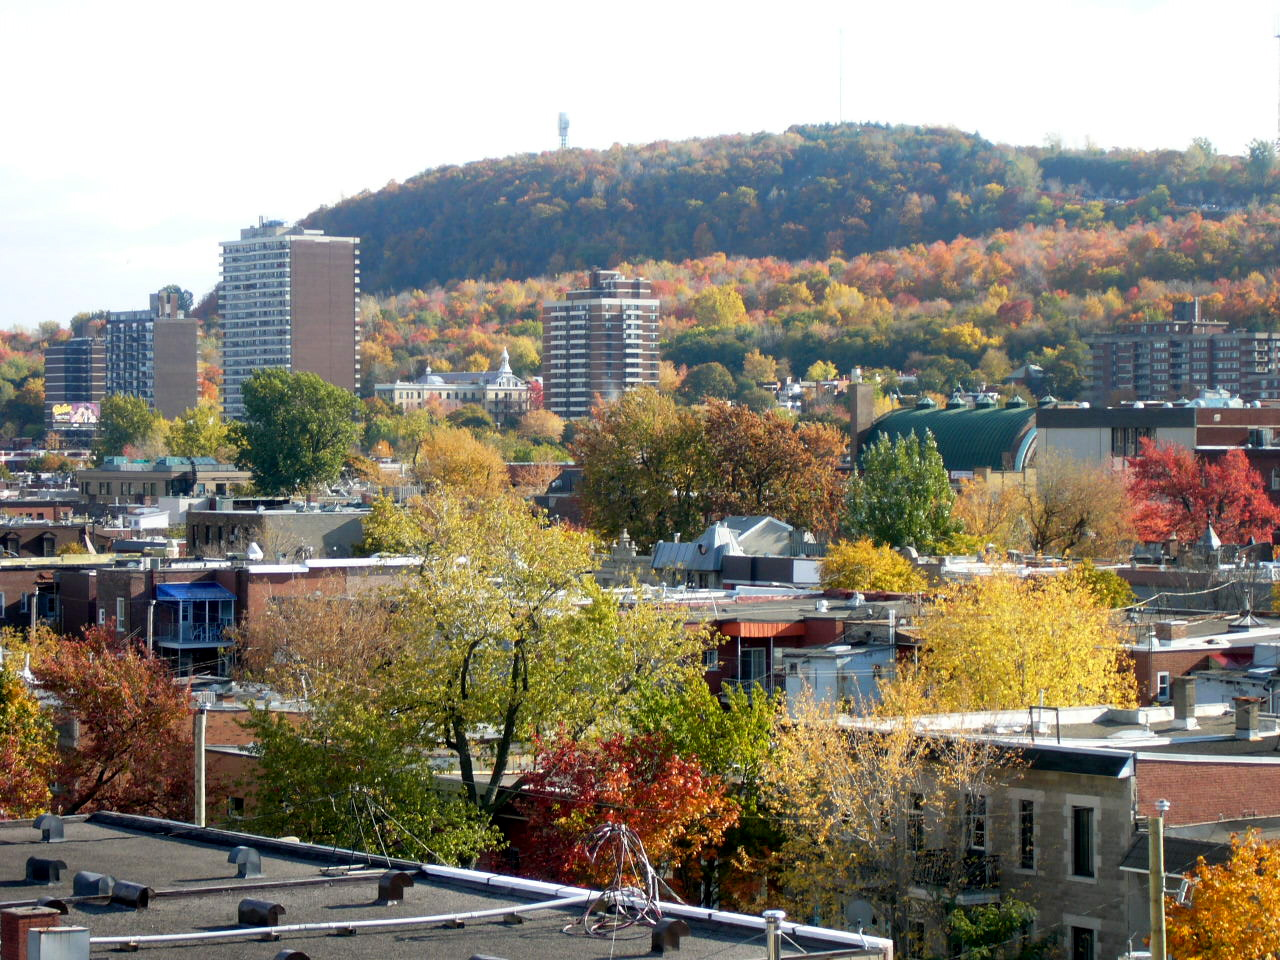 Mount Royal, from a rooftop on St. Laurent Boulevard